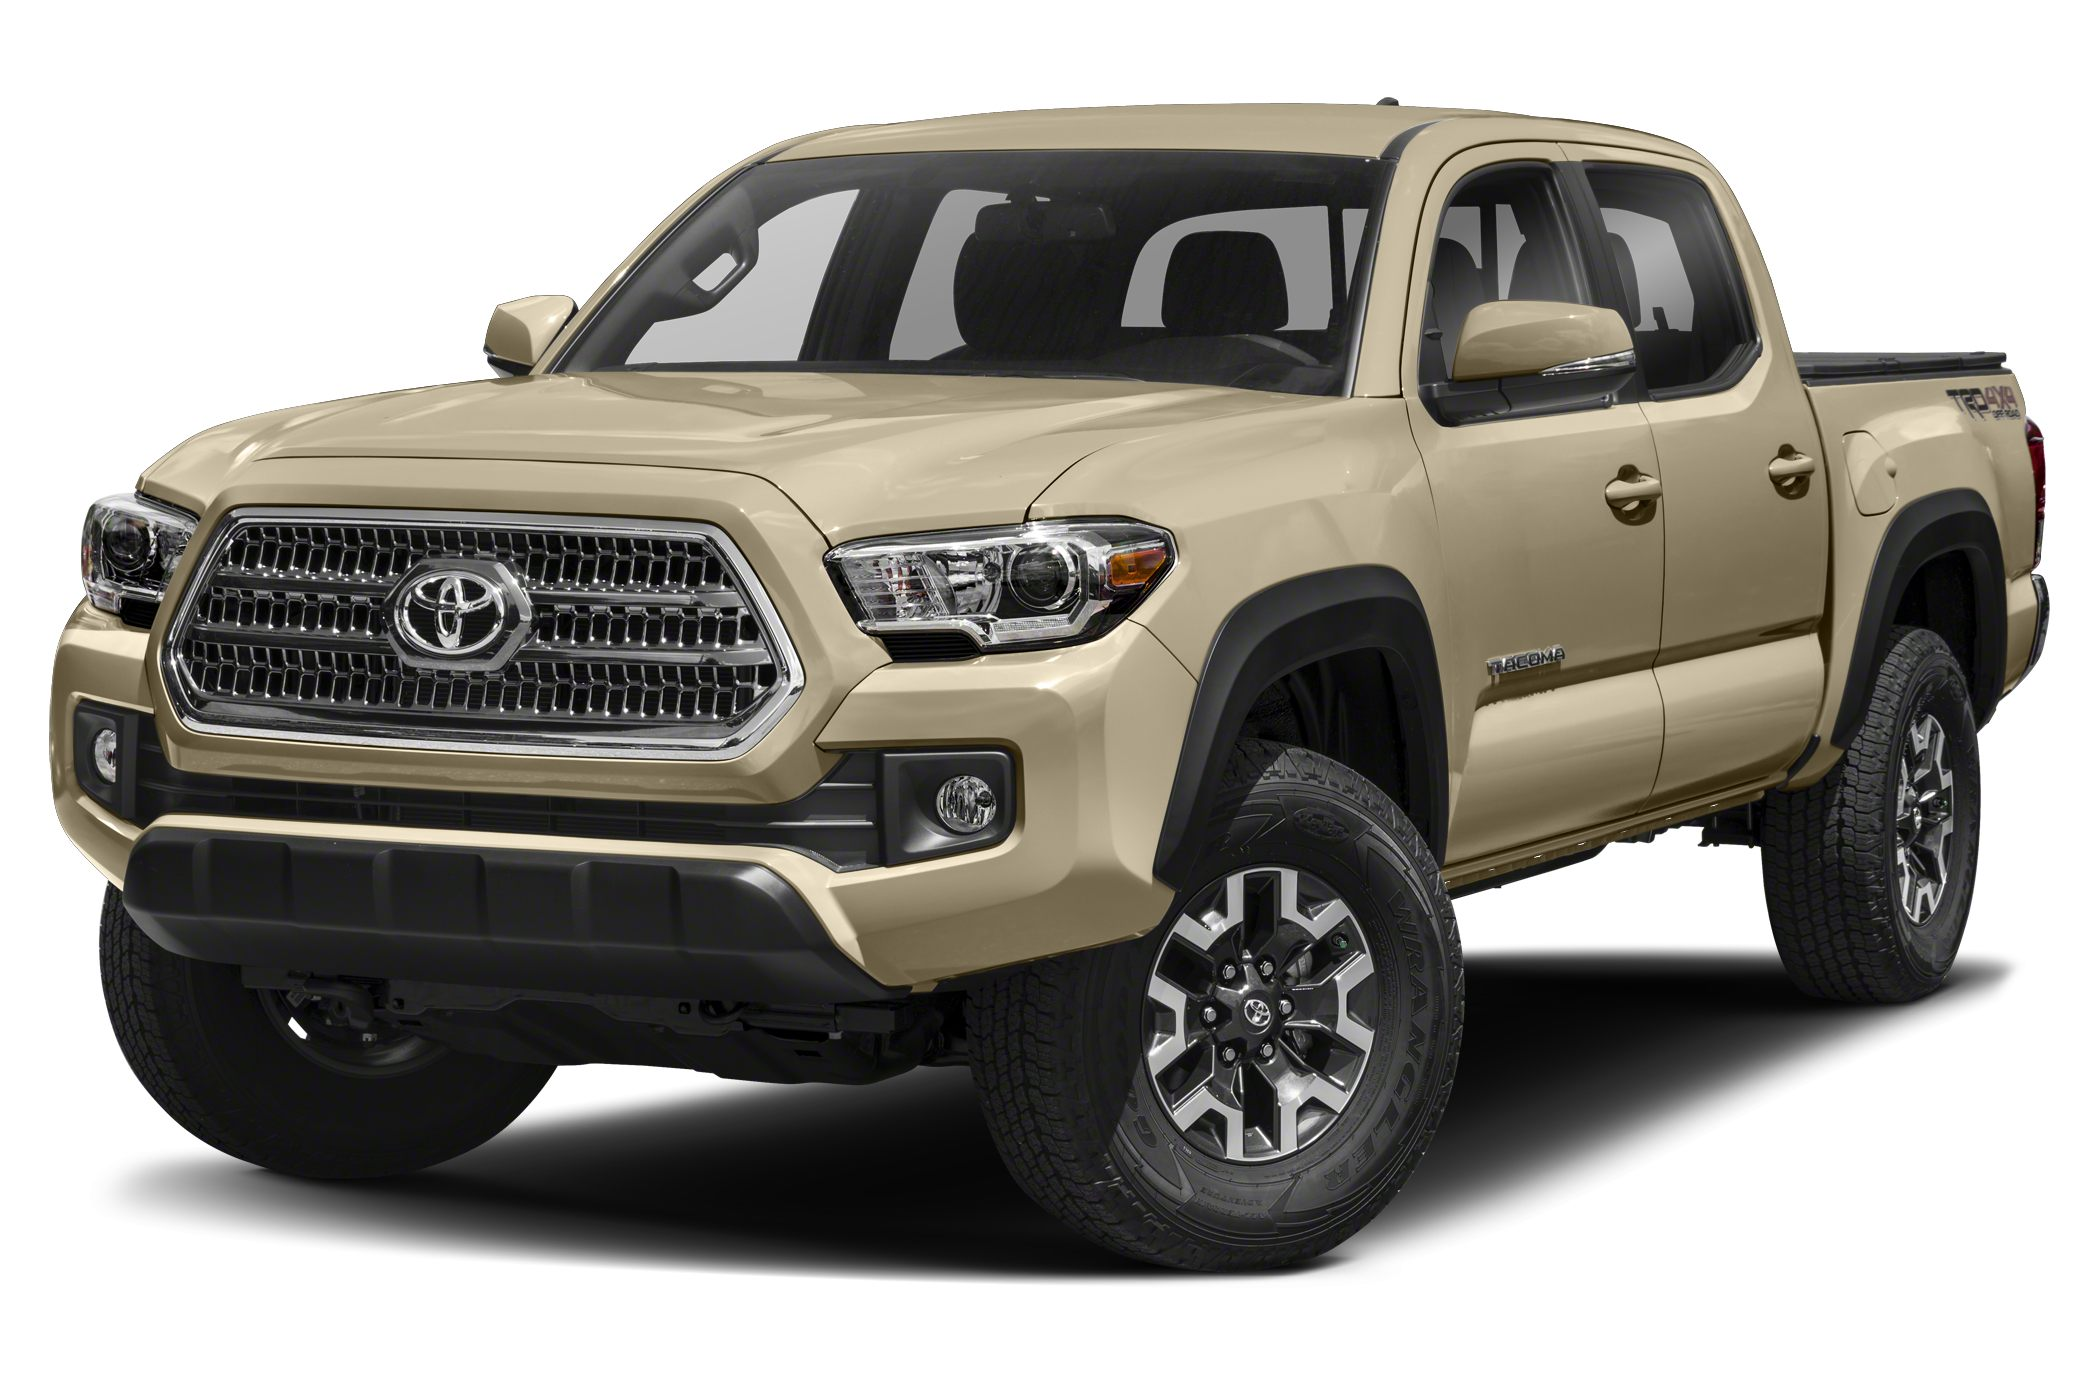 2016 Toyota Tacoma TRD Off Road Prices are PLUS tax tag title fee 799 Pre-Delivery Service F